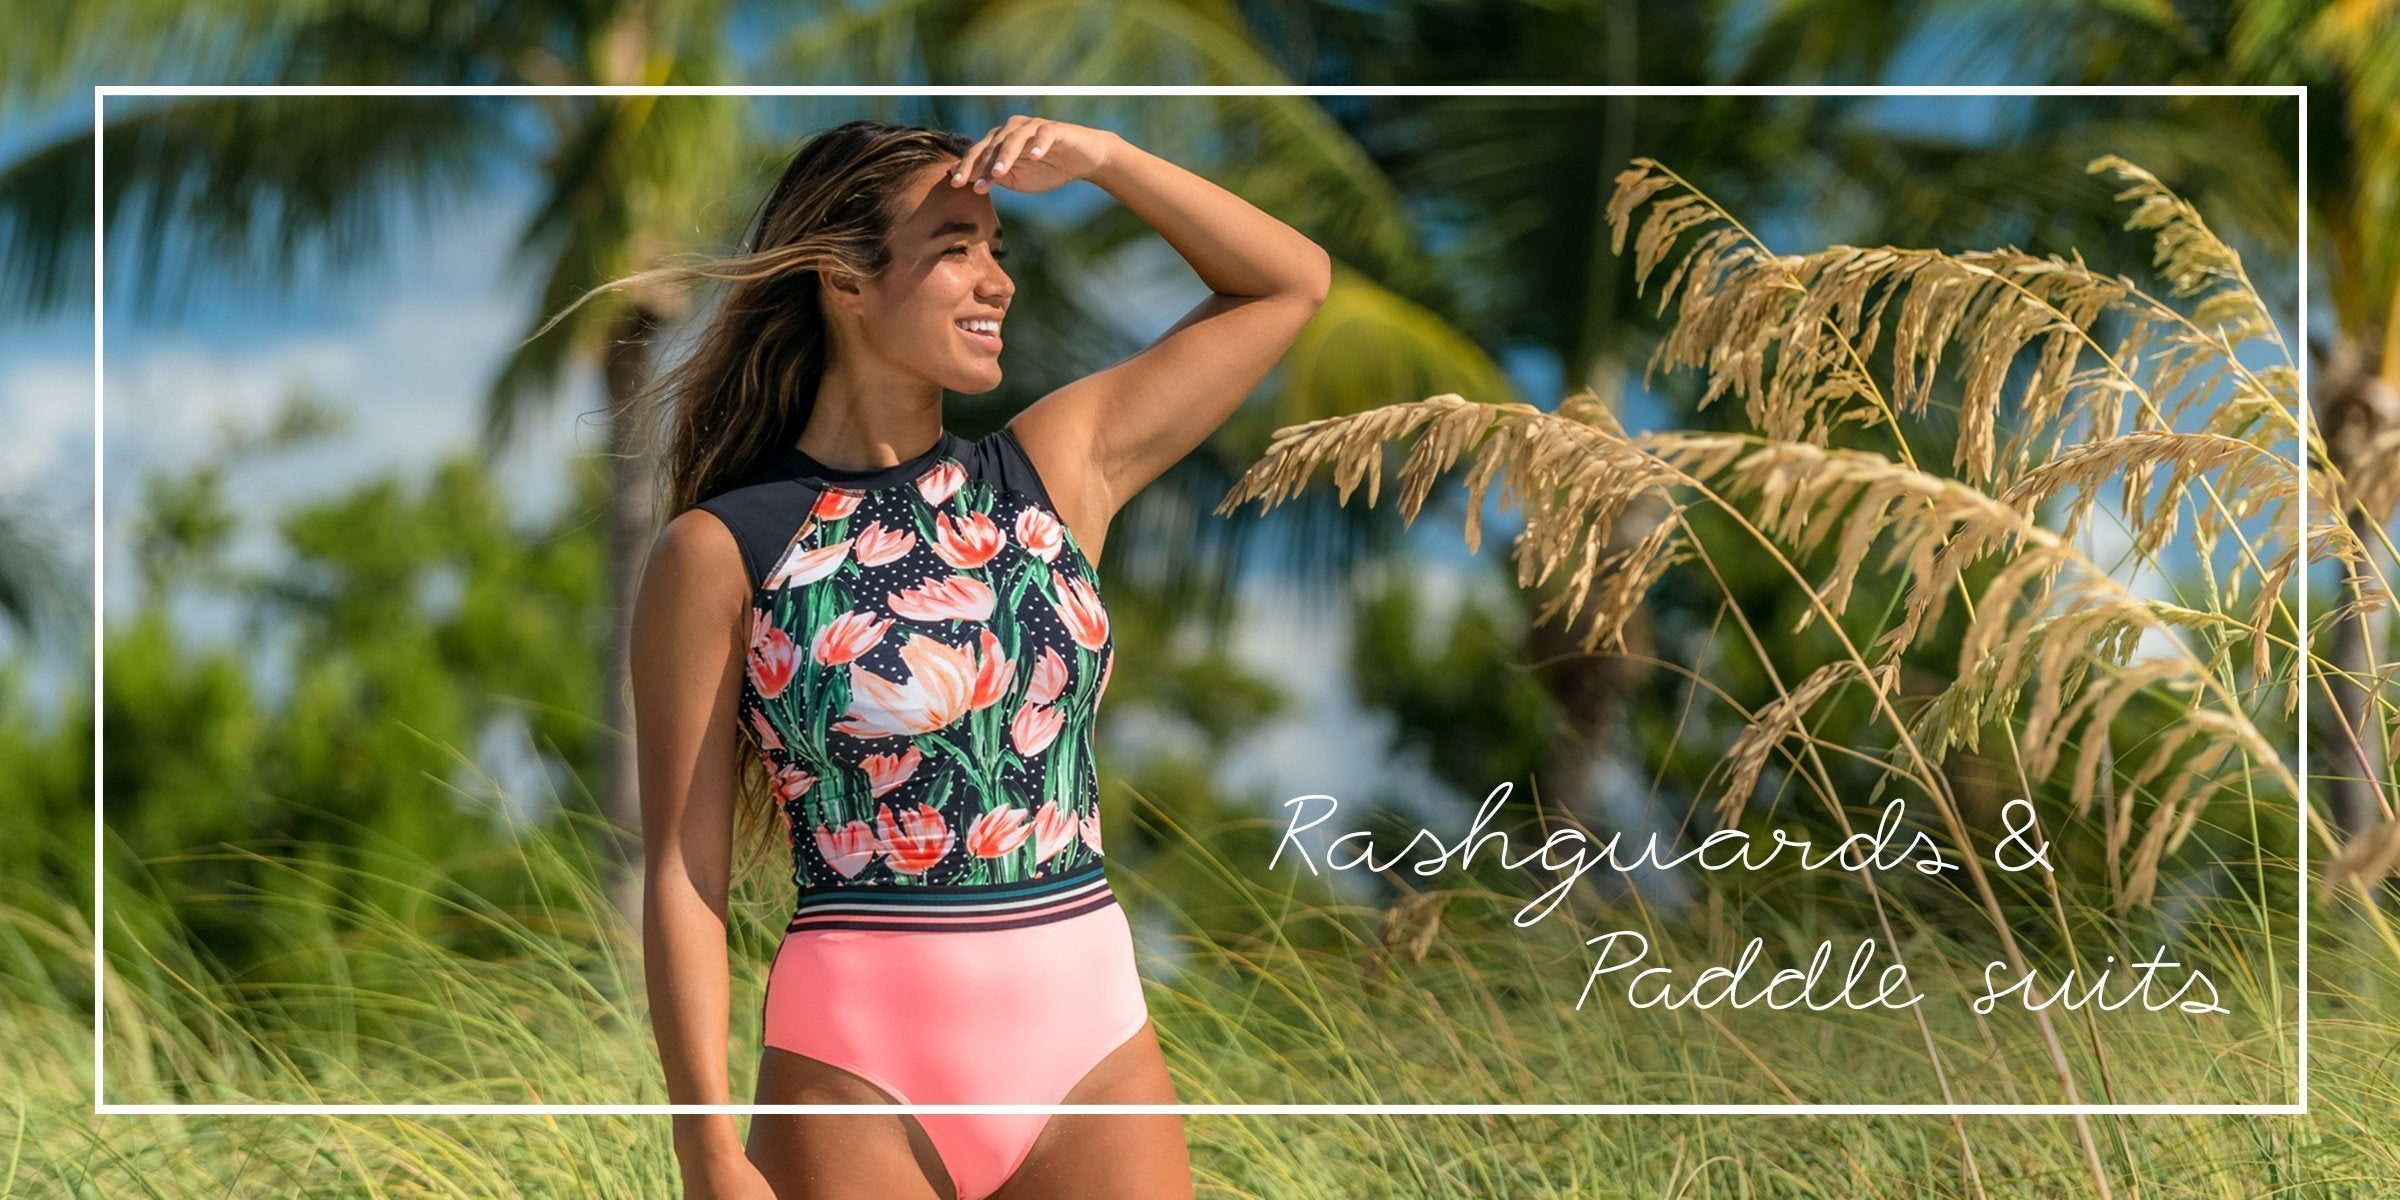 Discover: RASHGUARDS & PADDLE SUITS